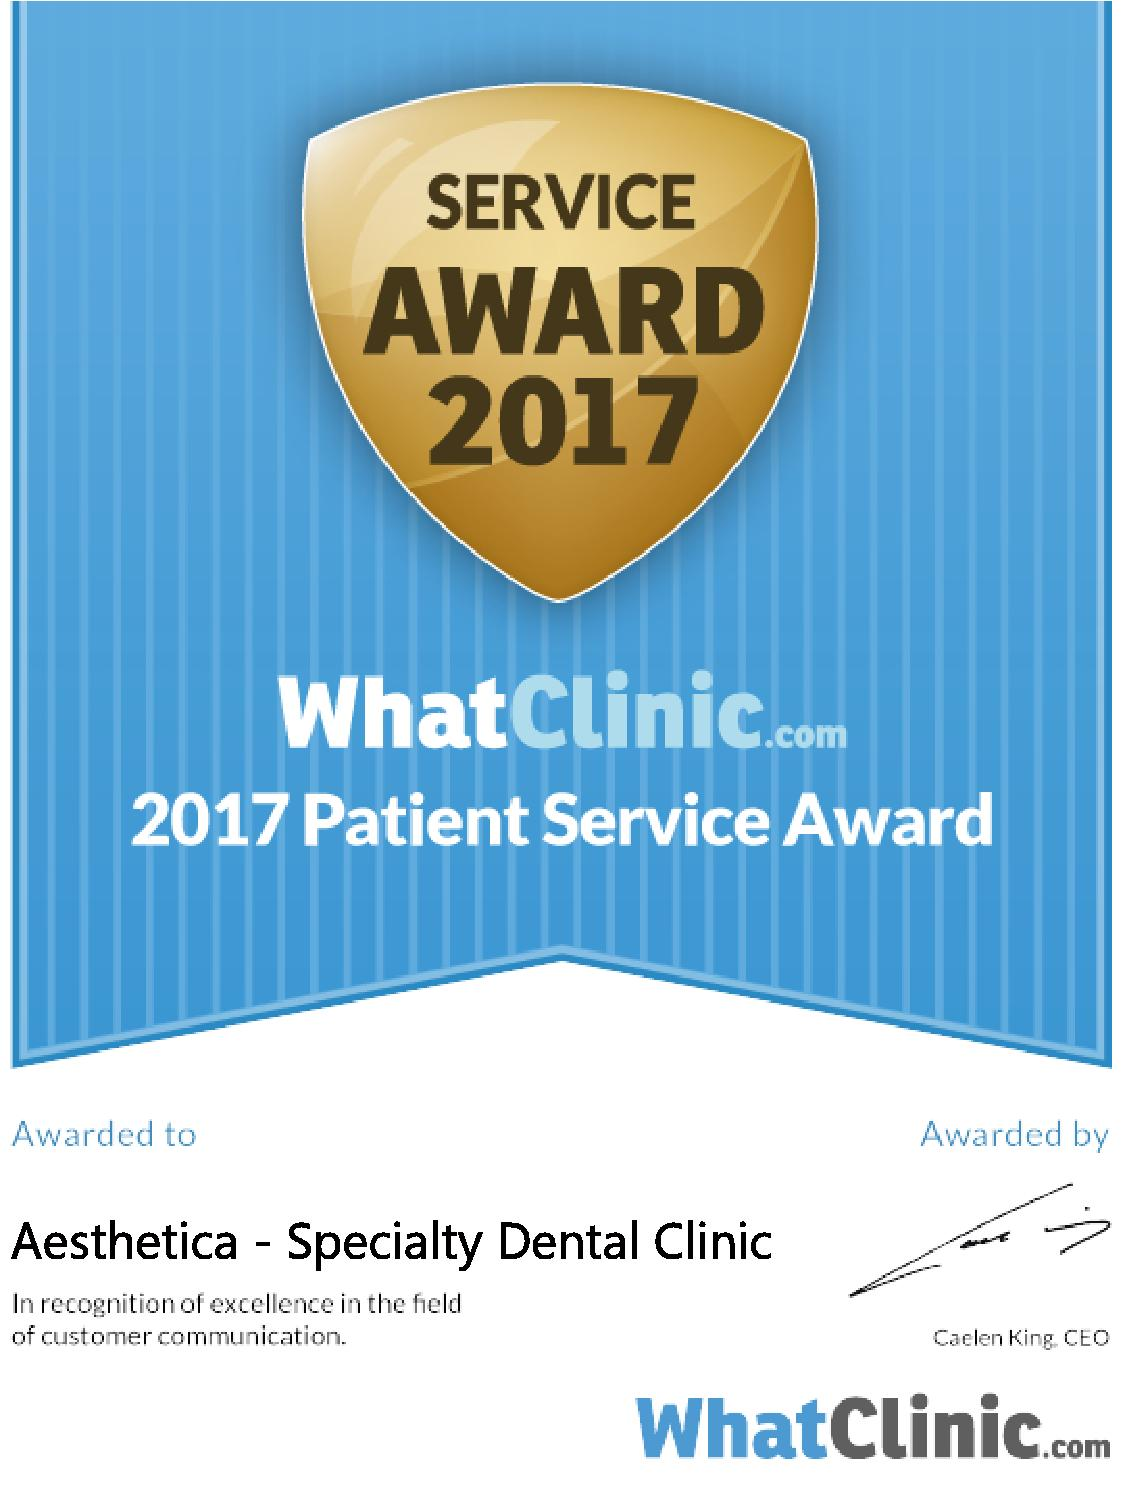 Whatclinic.com – Award Winner 2017